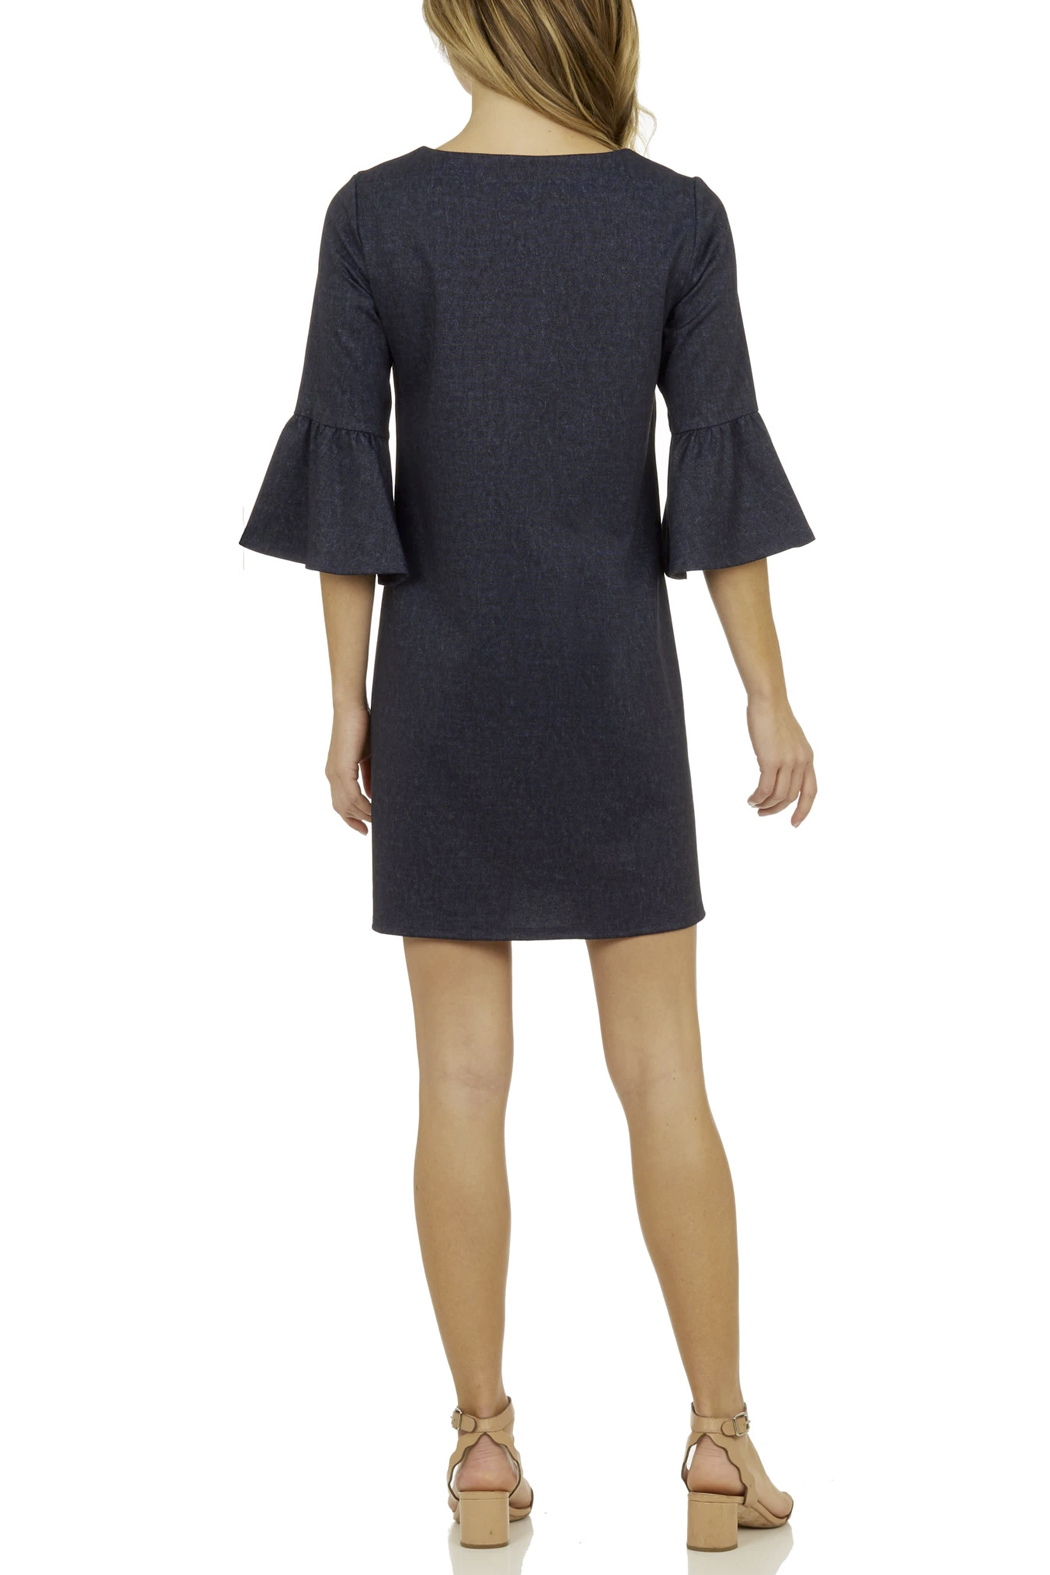 Jude Connally Shelby Ponte Knit Dress 104188 - Front Full Image